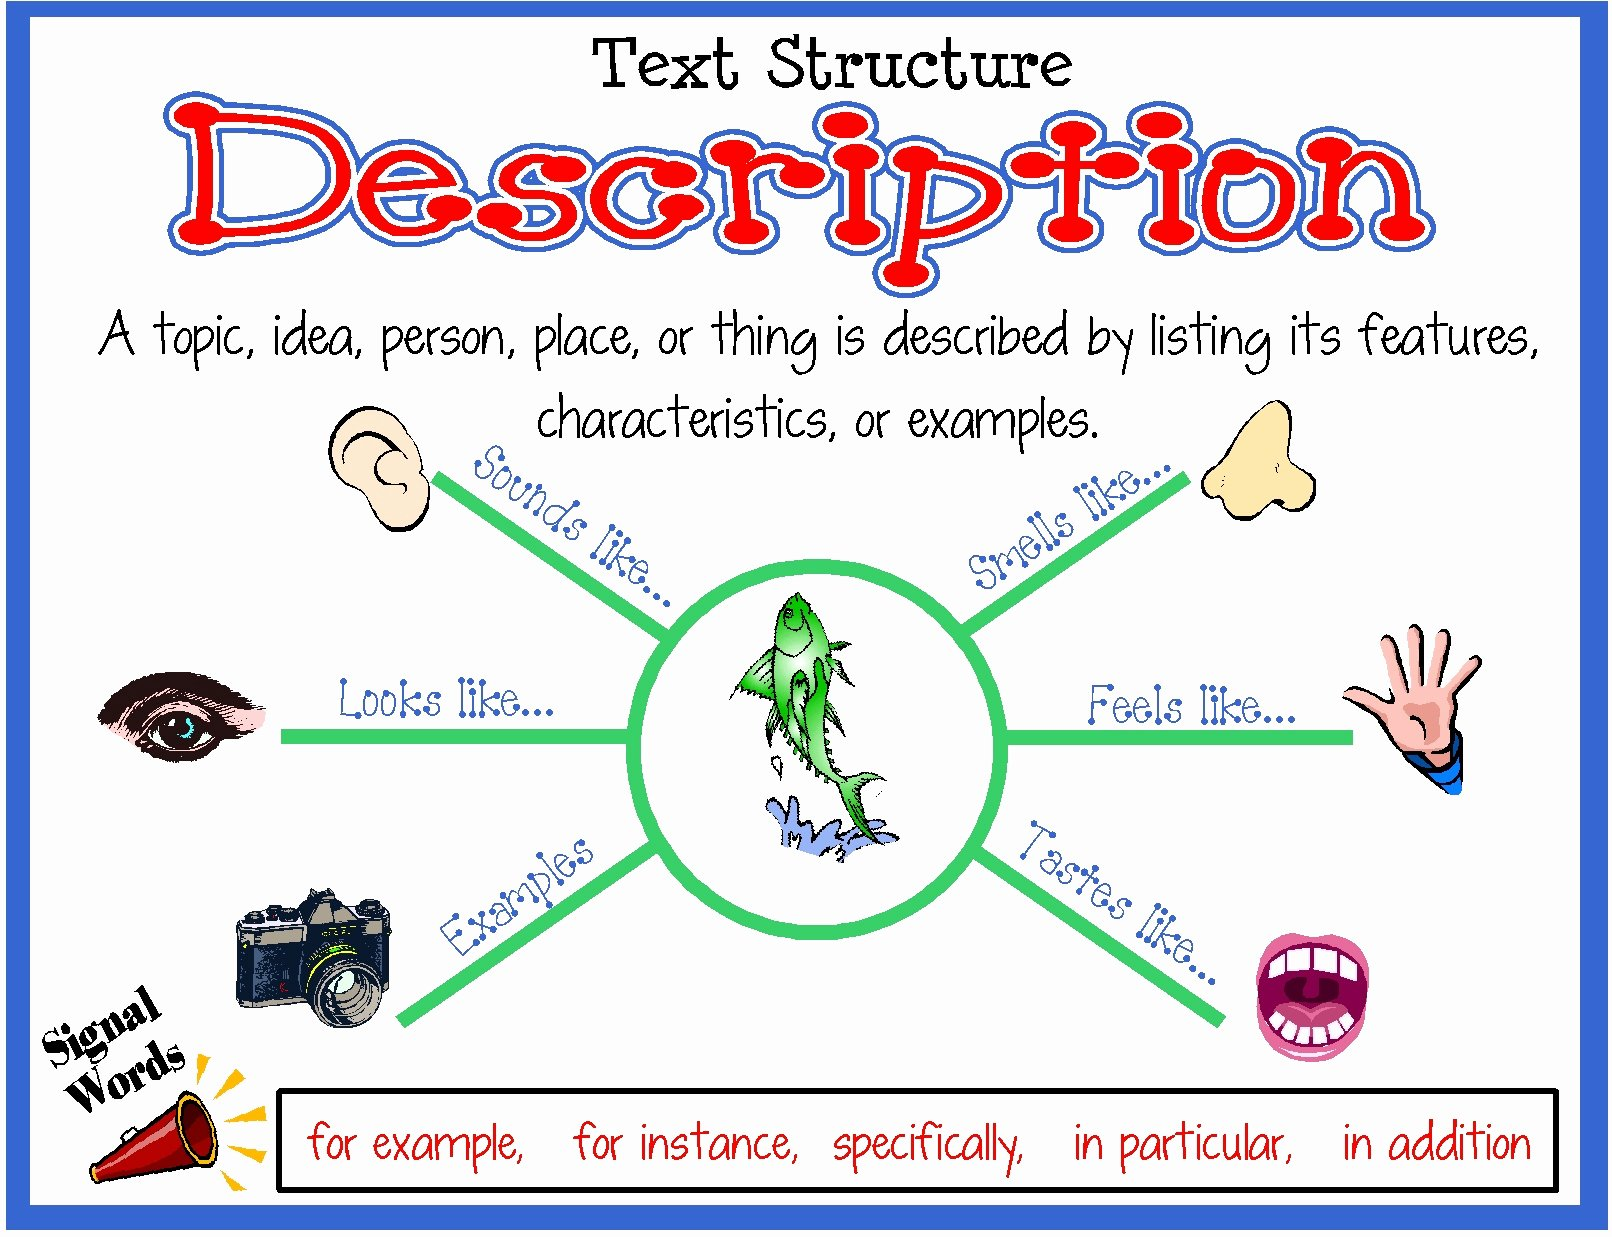 Text Structure Worksheet Pdf Inspirational 6a00e54faaf86b E5fa55d C